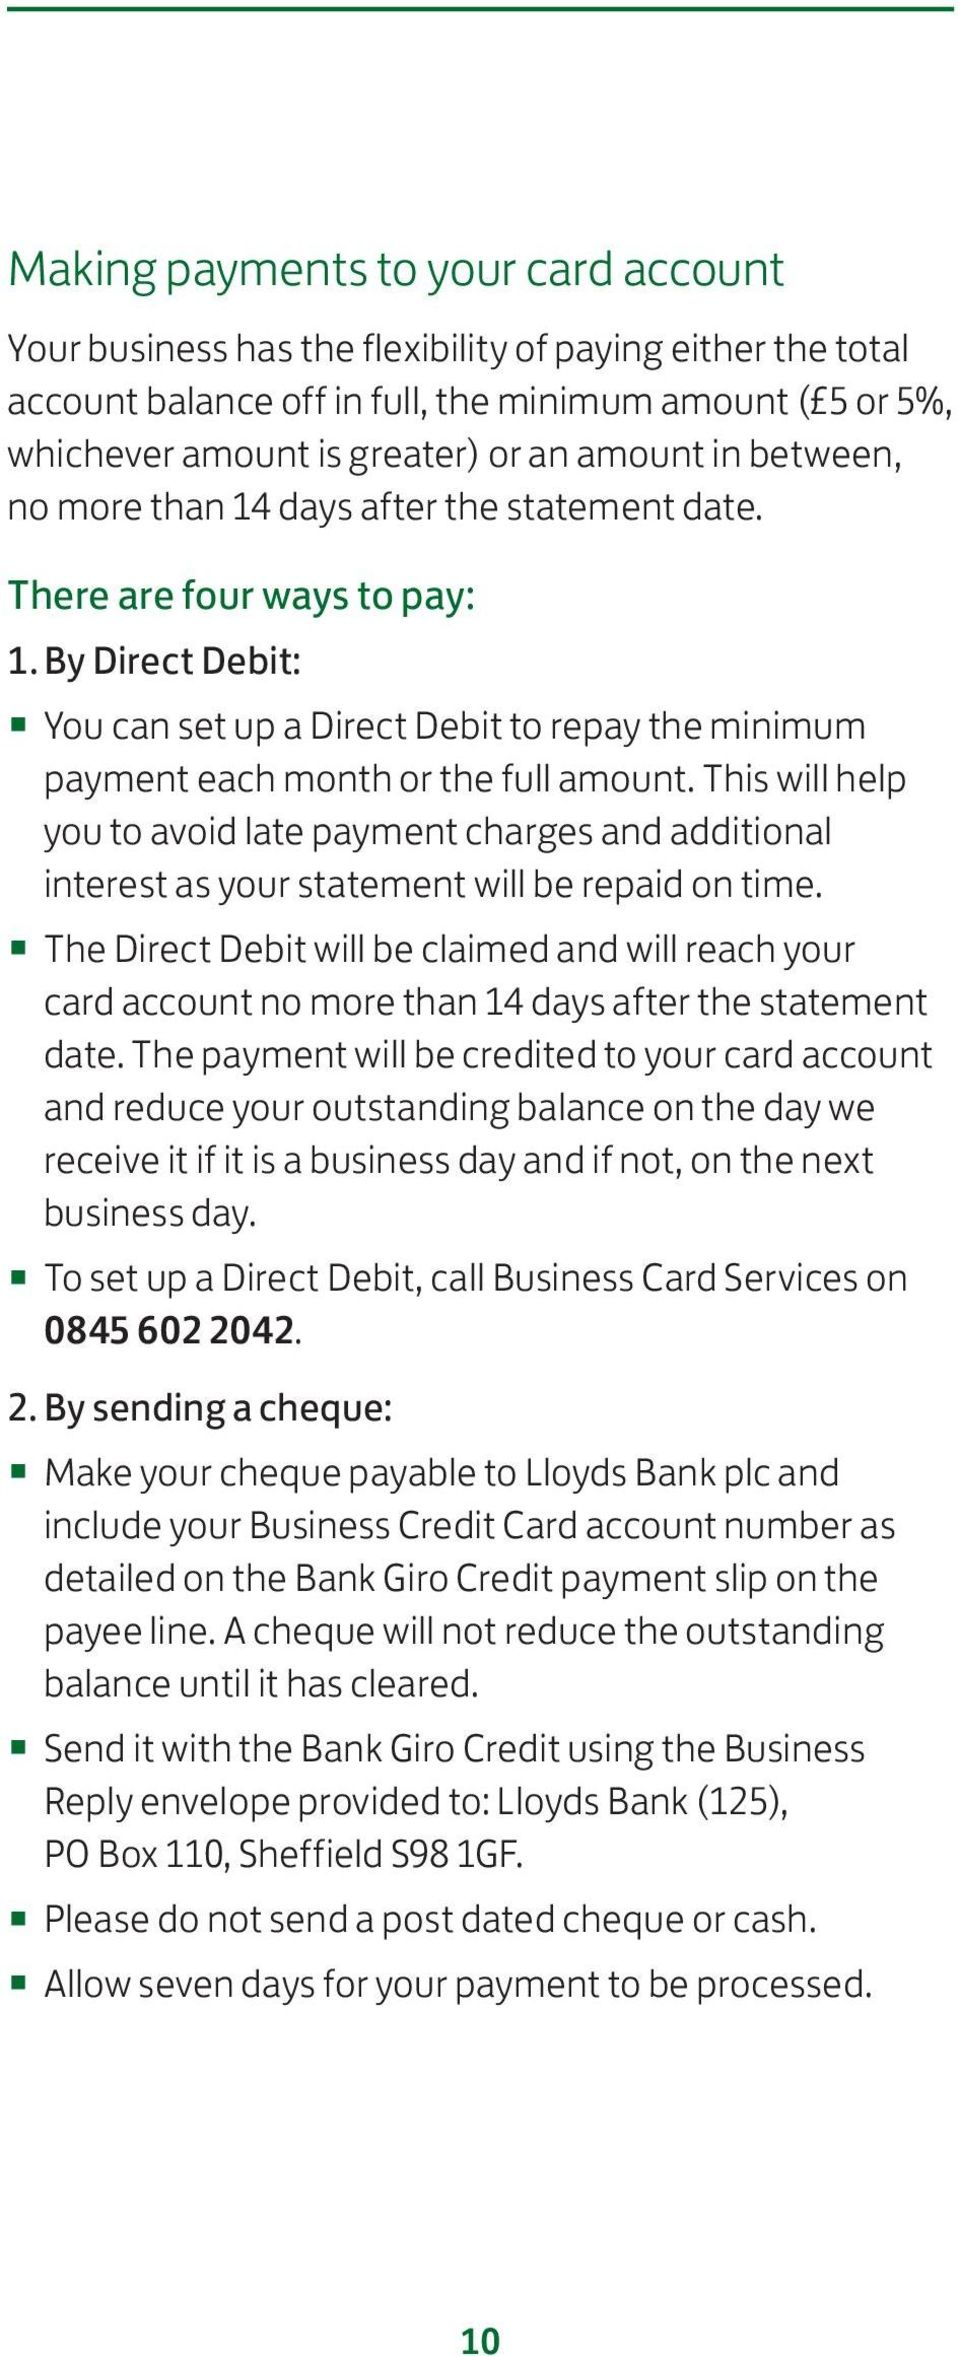 This will help you to avoid late payment charges and additional interest as your statement will be repaid on time.